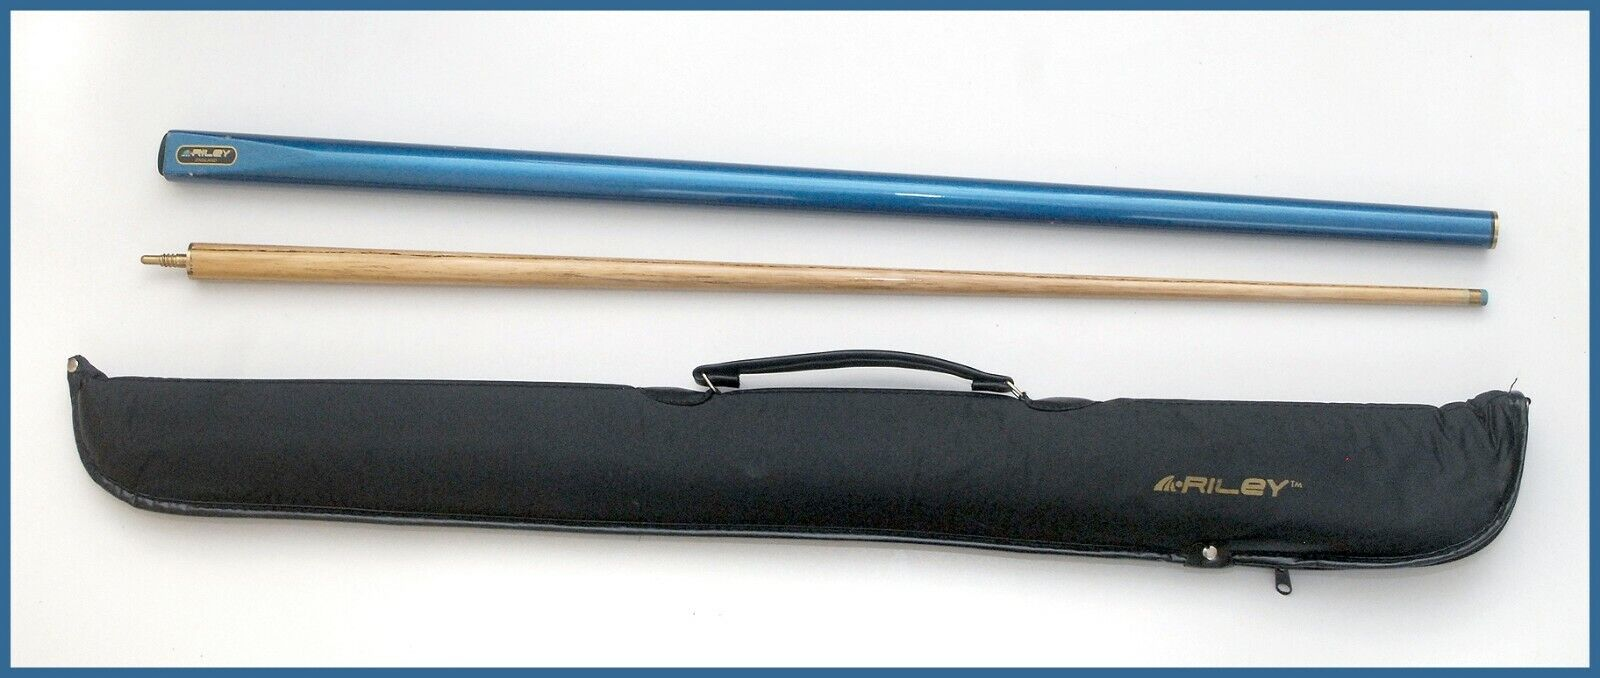 Riley Metallic Turqoise / Blue 2 Piece Ash Snooker and Pool Cue 17oz + Case